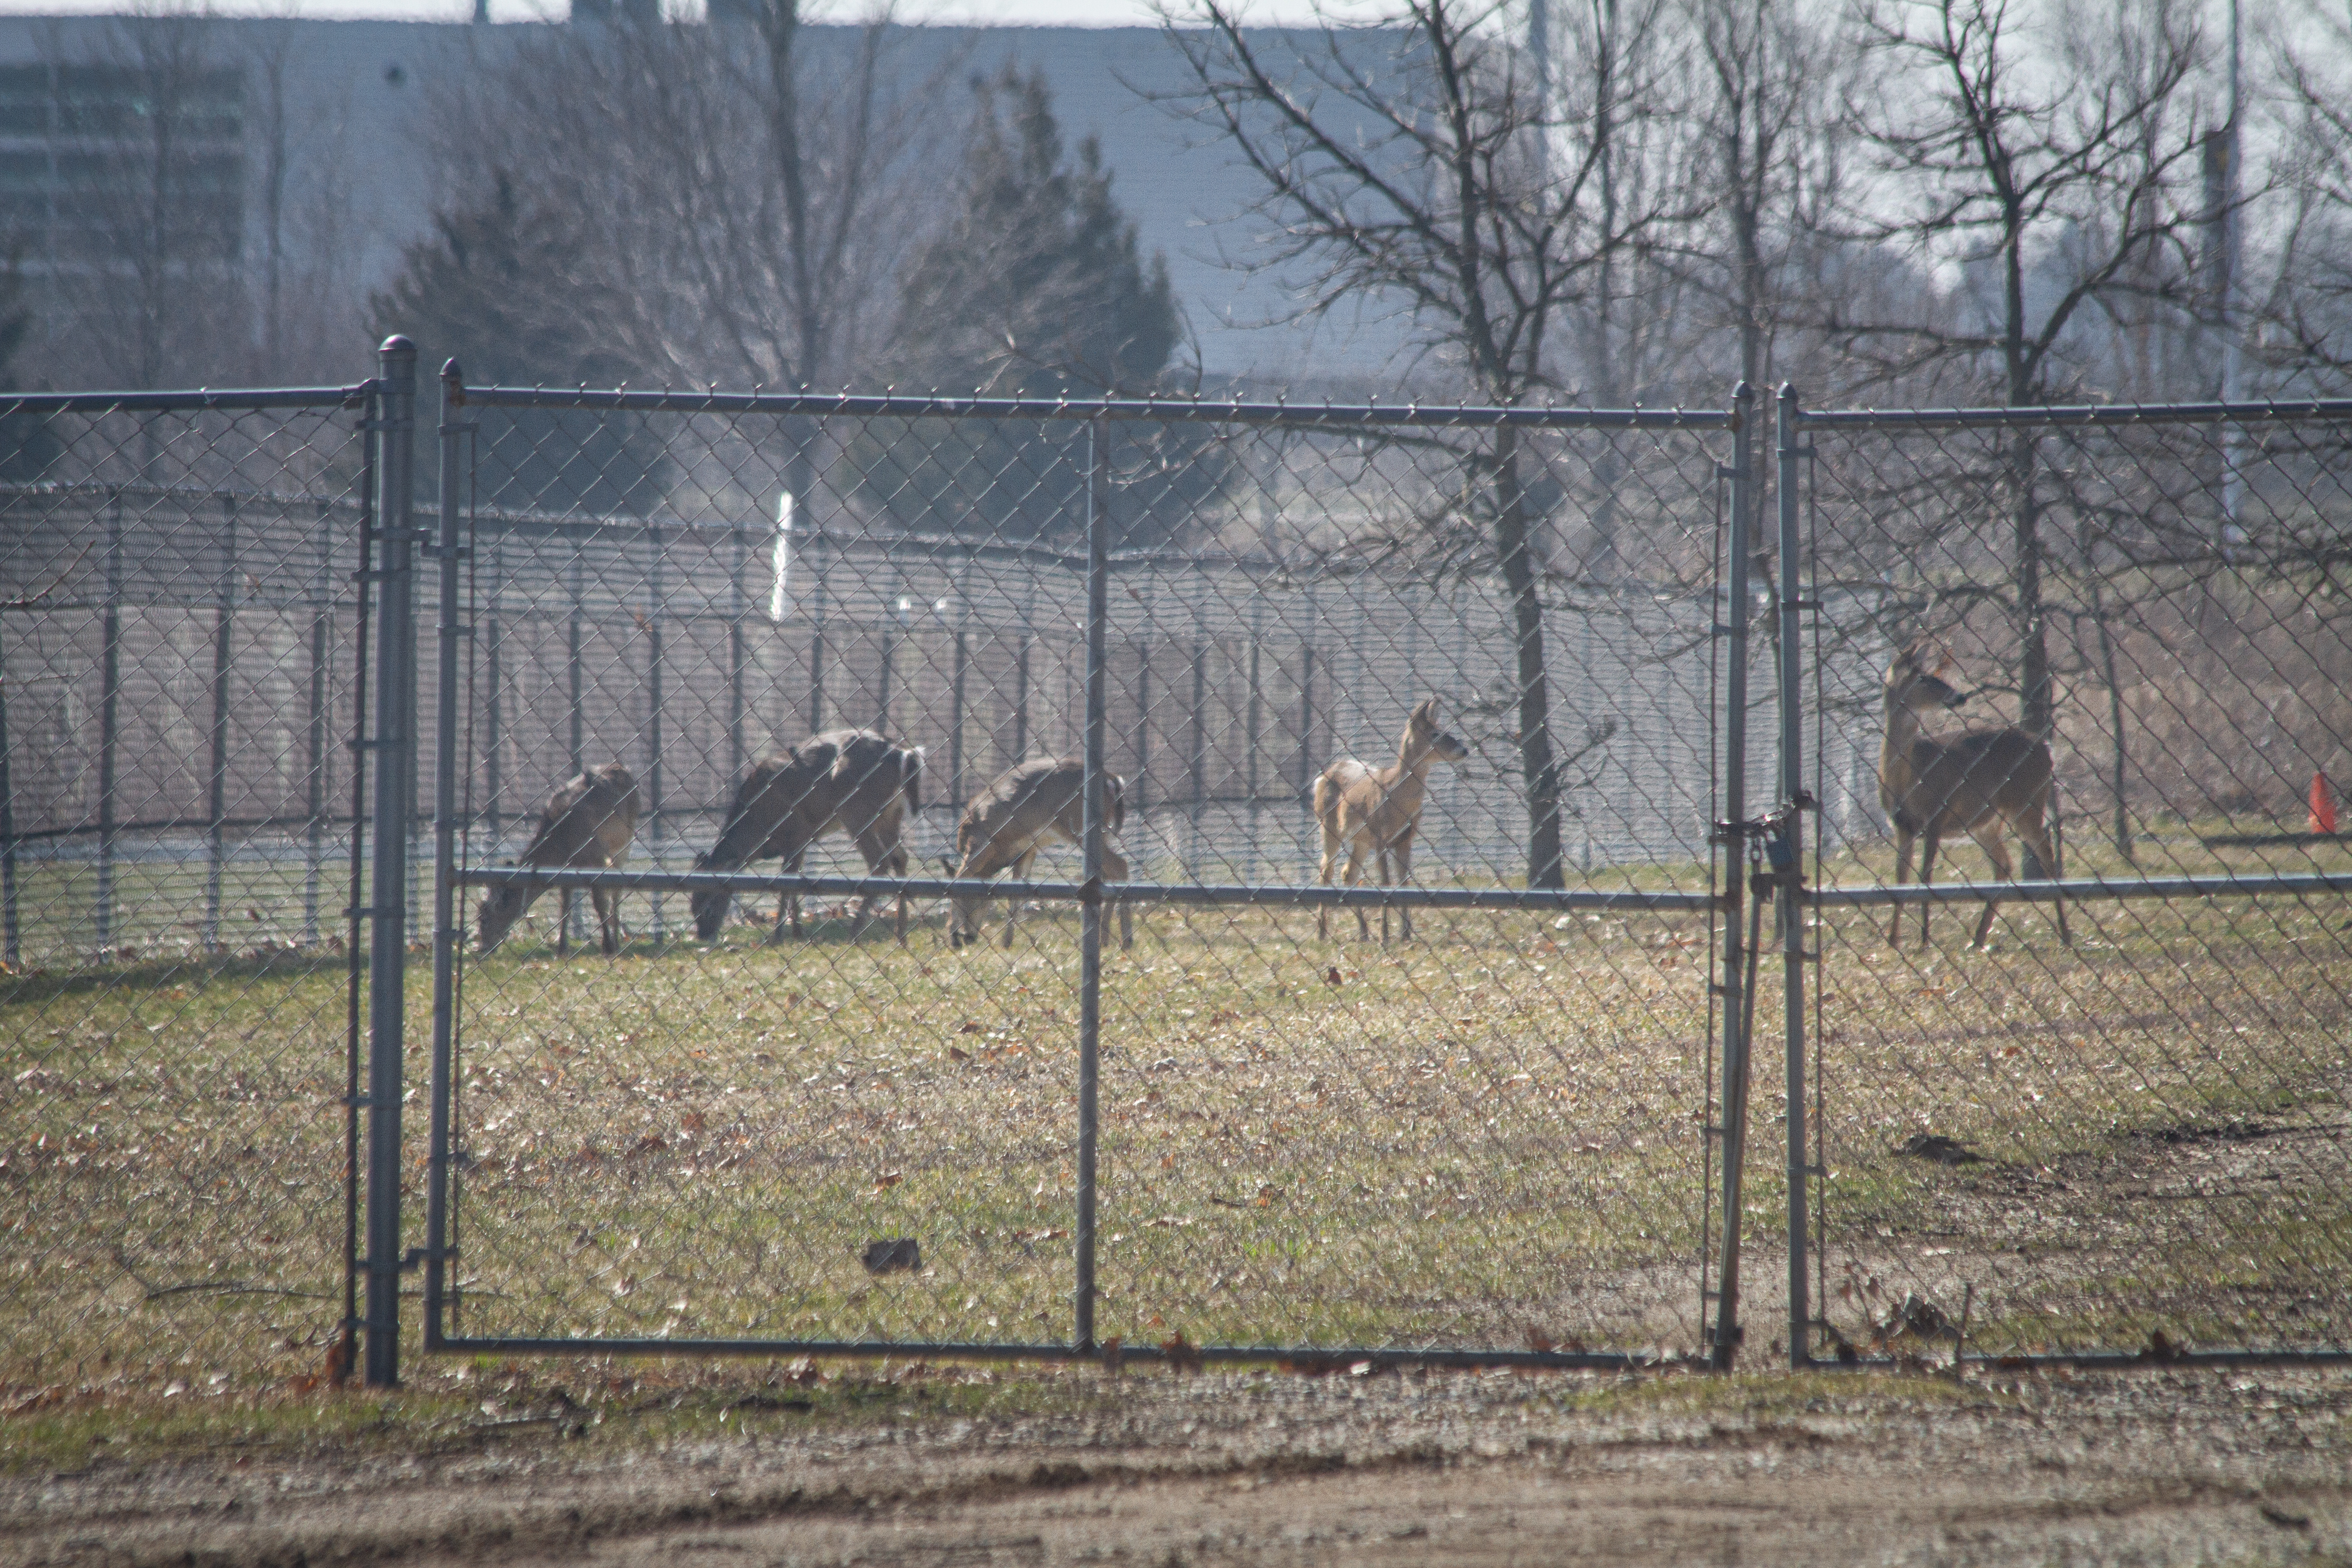 Deer graze on the grounds by Parkview Avenue in Kalamazoo on Wednesday, March 25.{ }(WWMT/Sarah White)